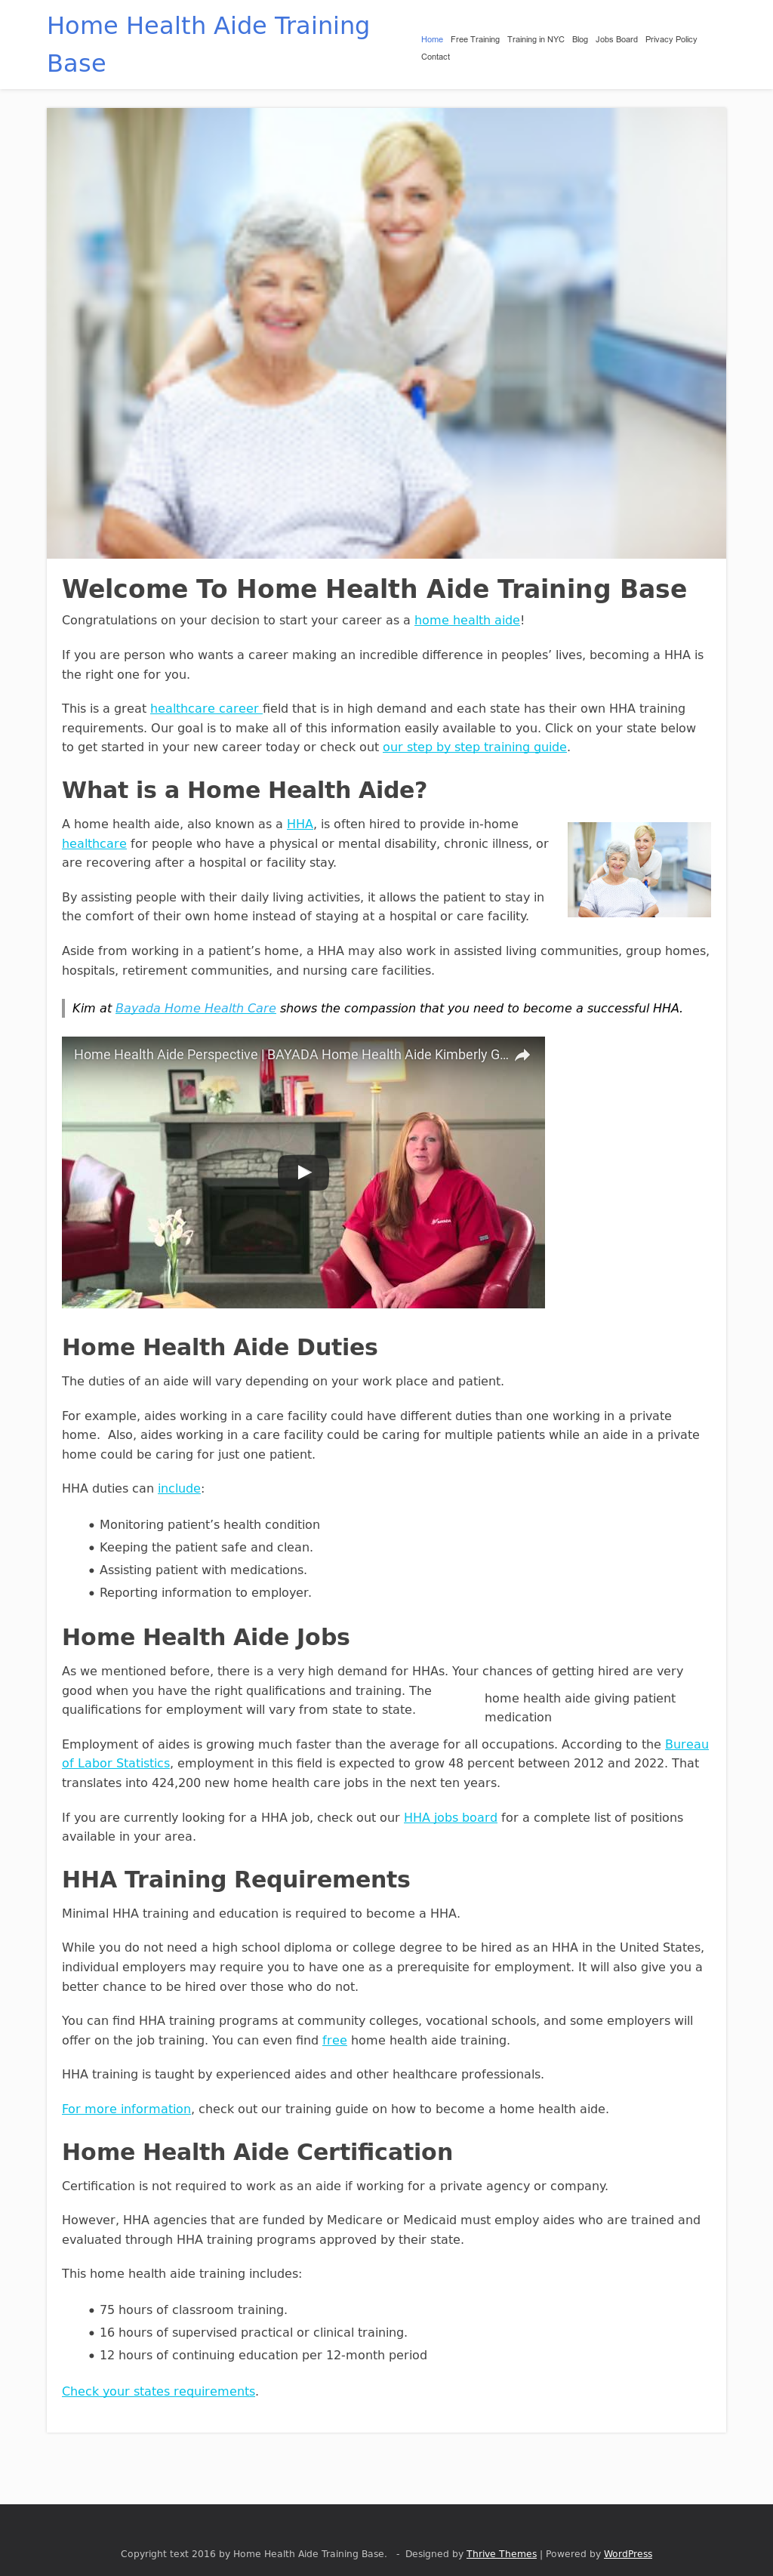 Home Health Aide Training Base Competitors Revenue And Employees